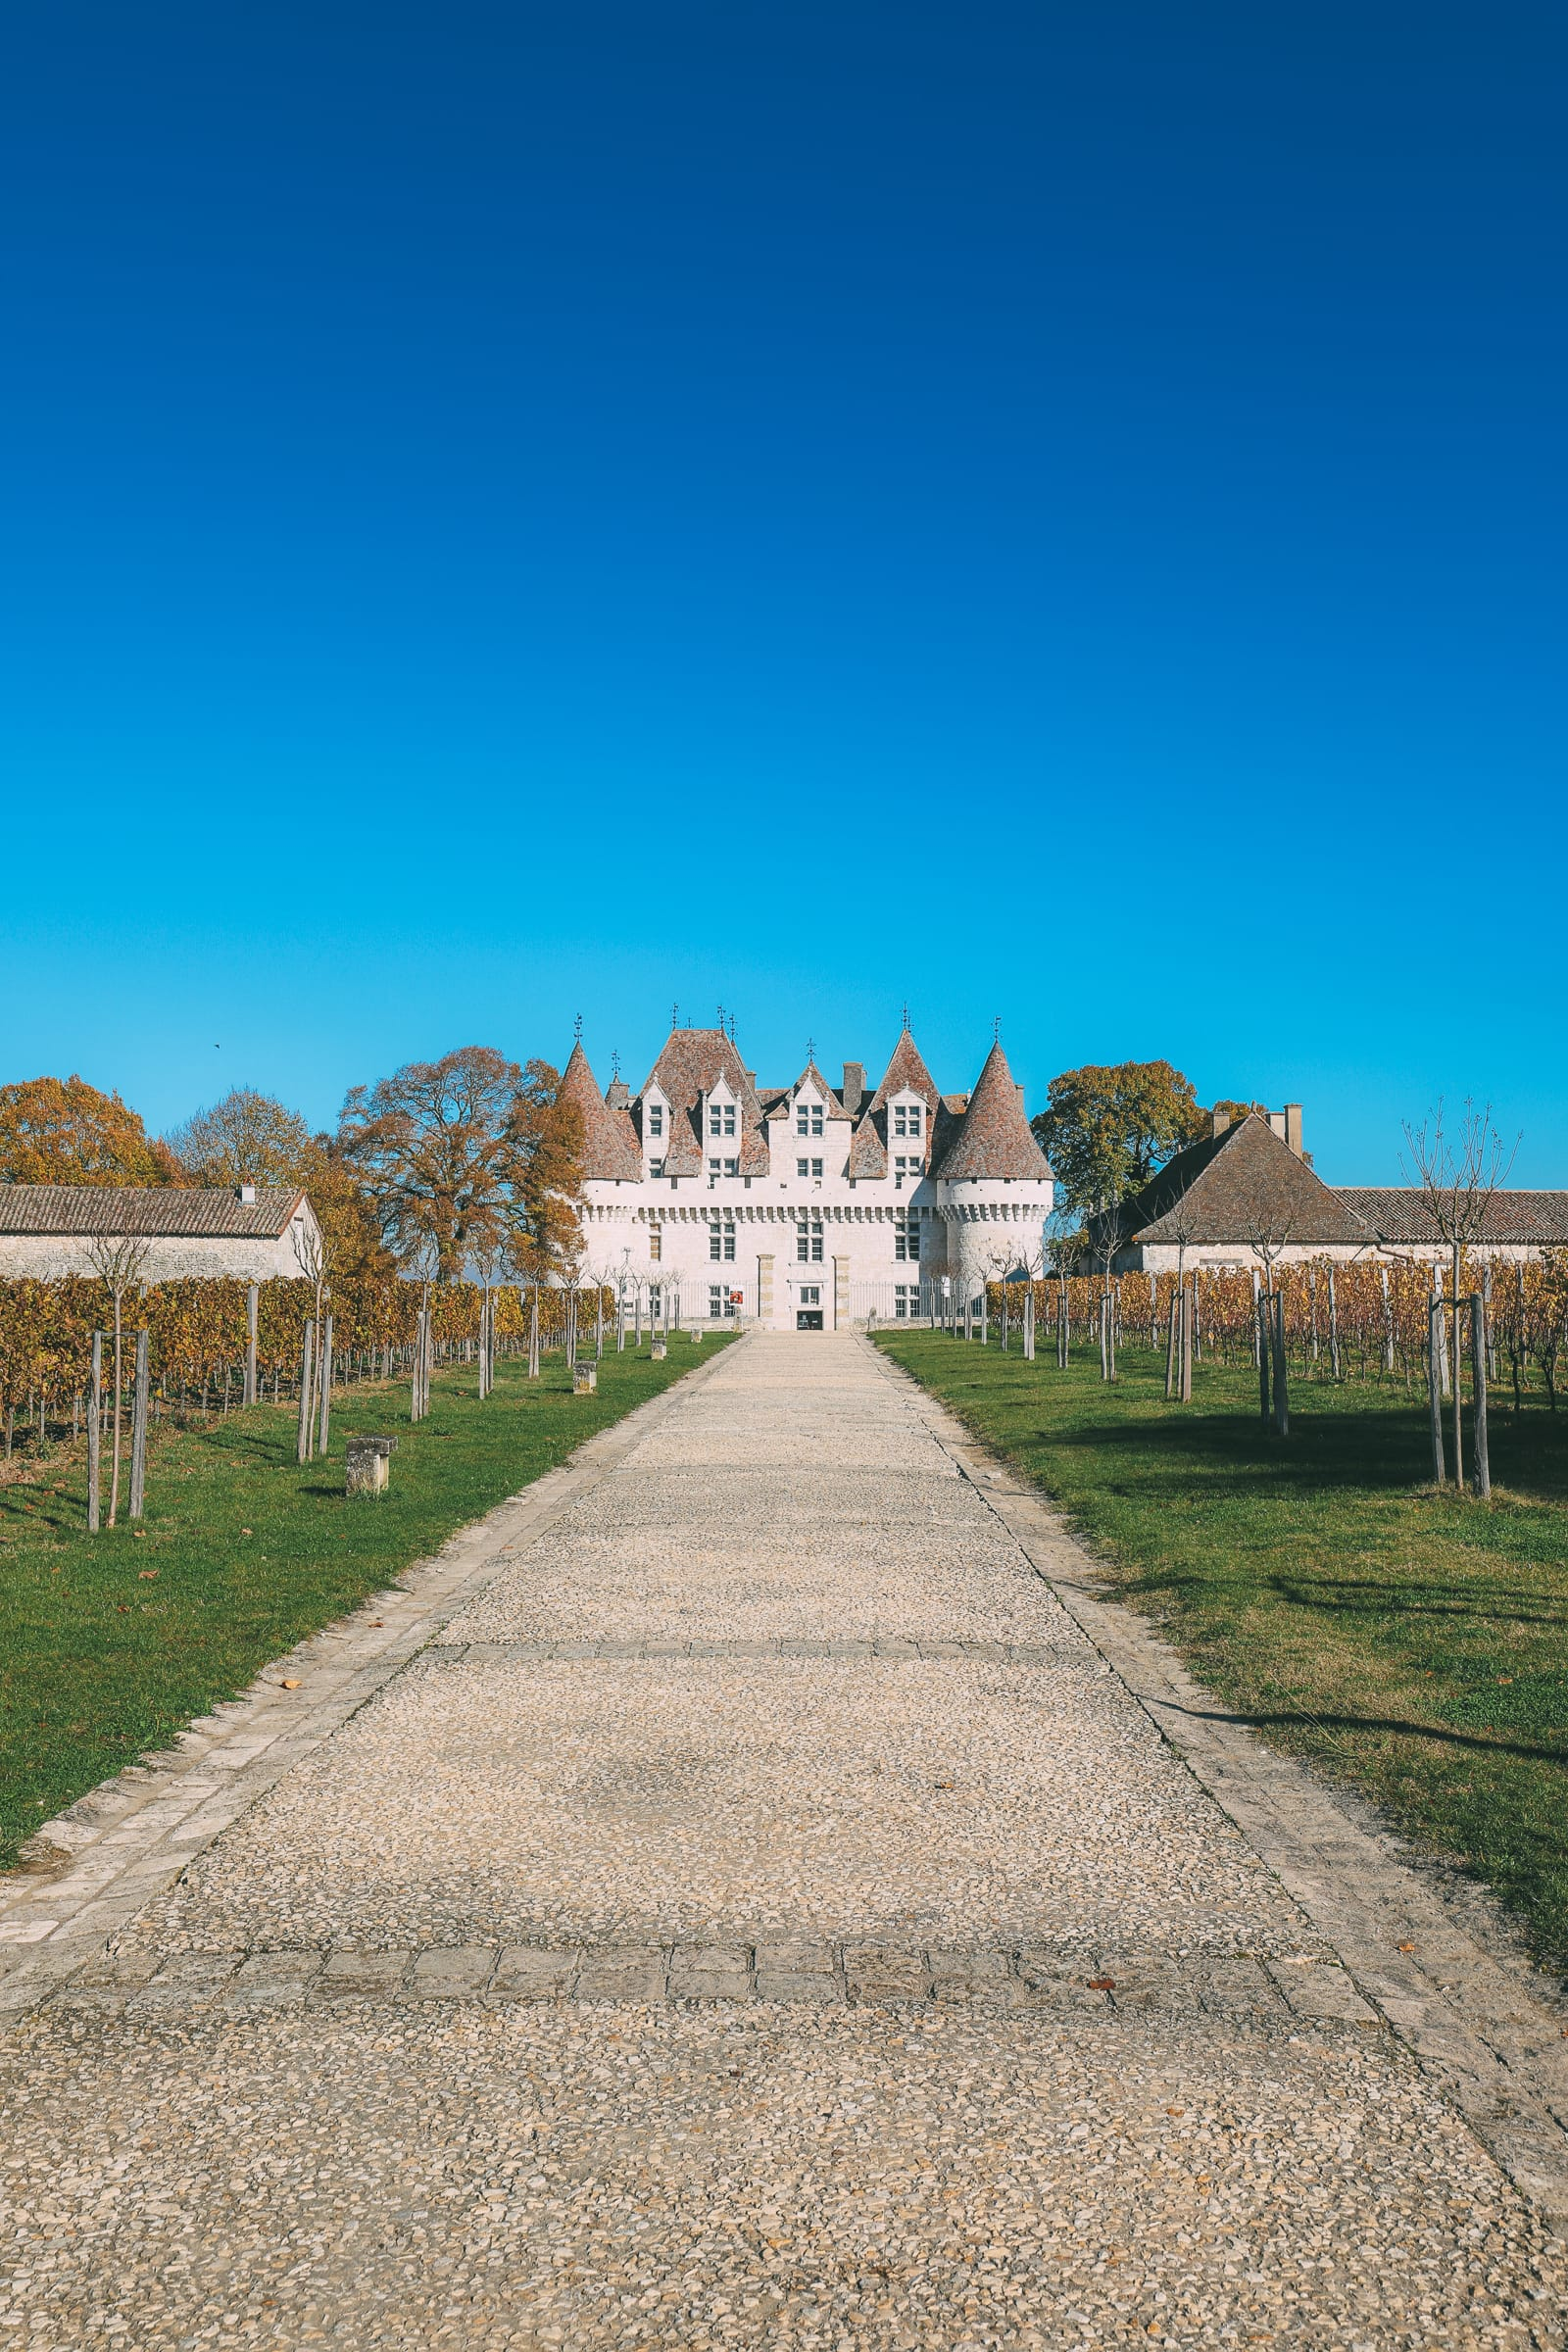 French Wine, French Castles And Delicious French Food - A Trip To French Wine Country (41)